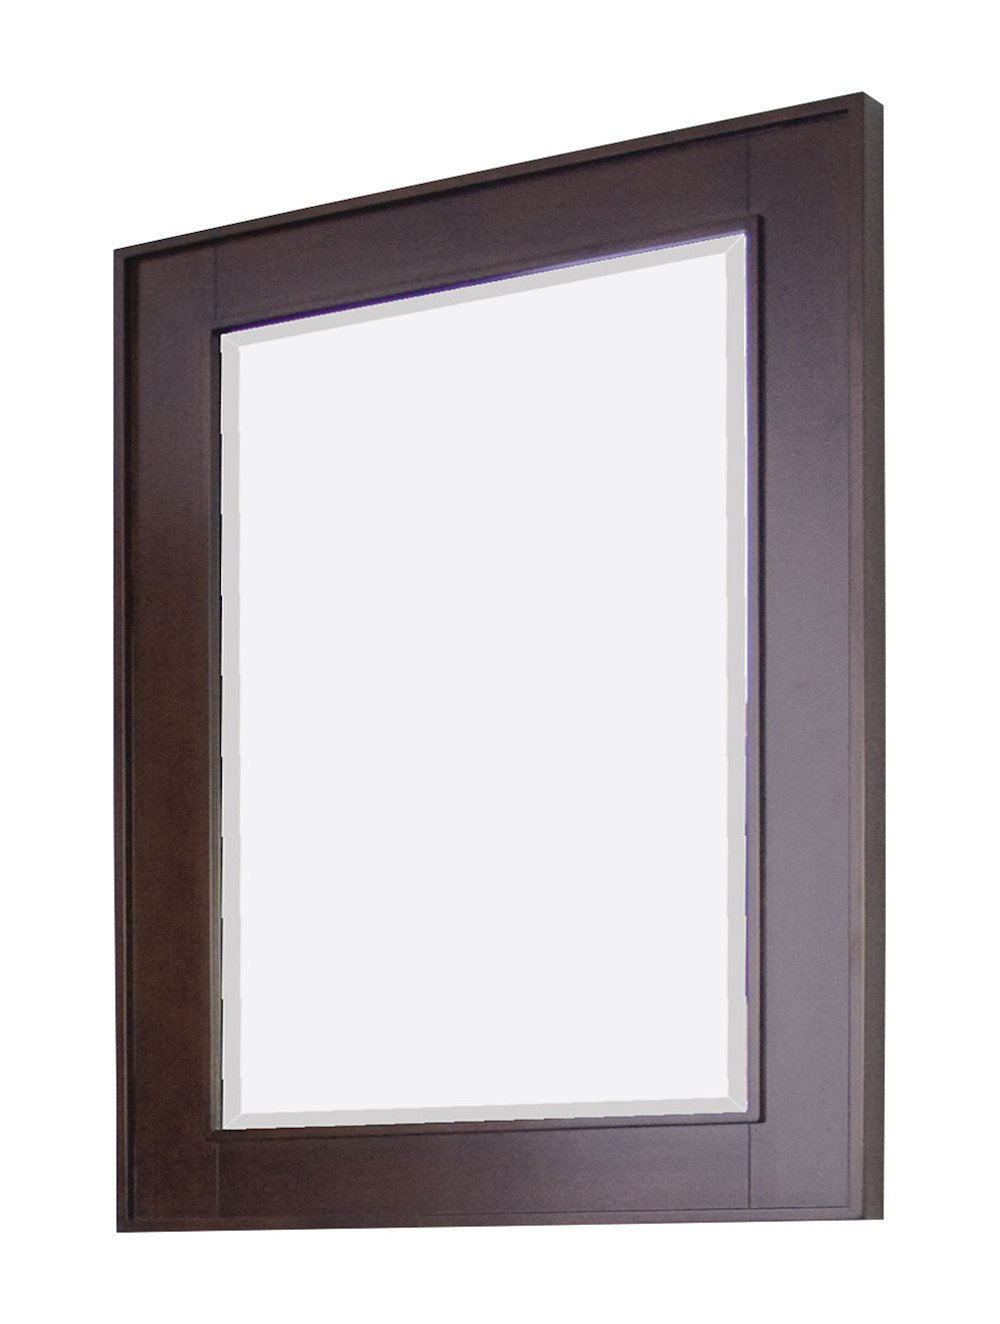 American Imaginations AI-2-1141 Rectangle Wood Framed Mirror without Shelf, 24-Inch x 32-Inch, Walnut Finish